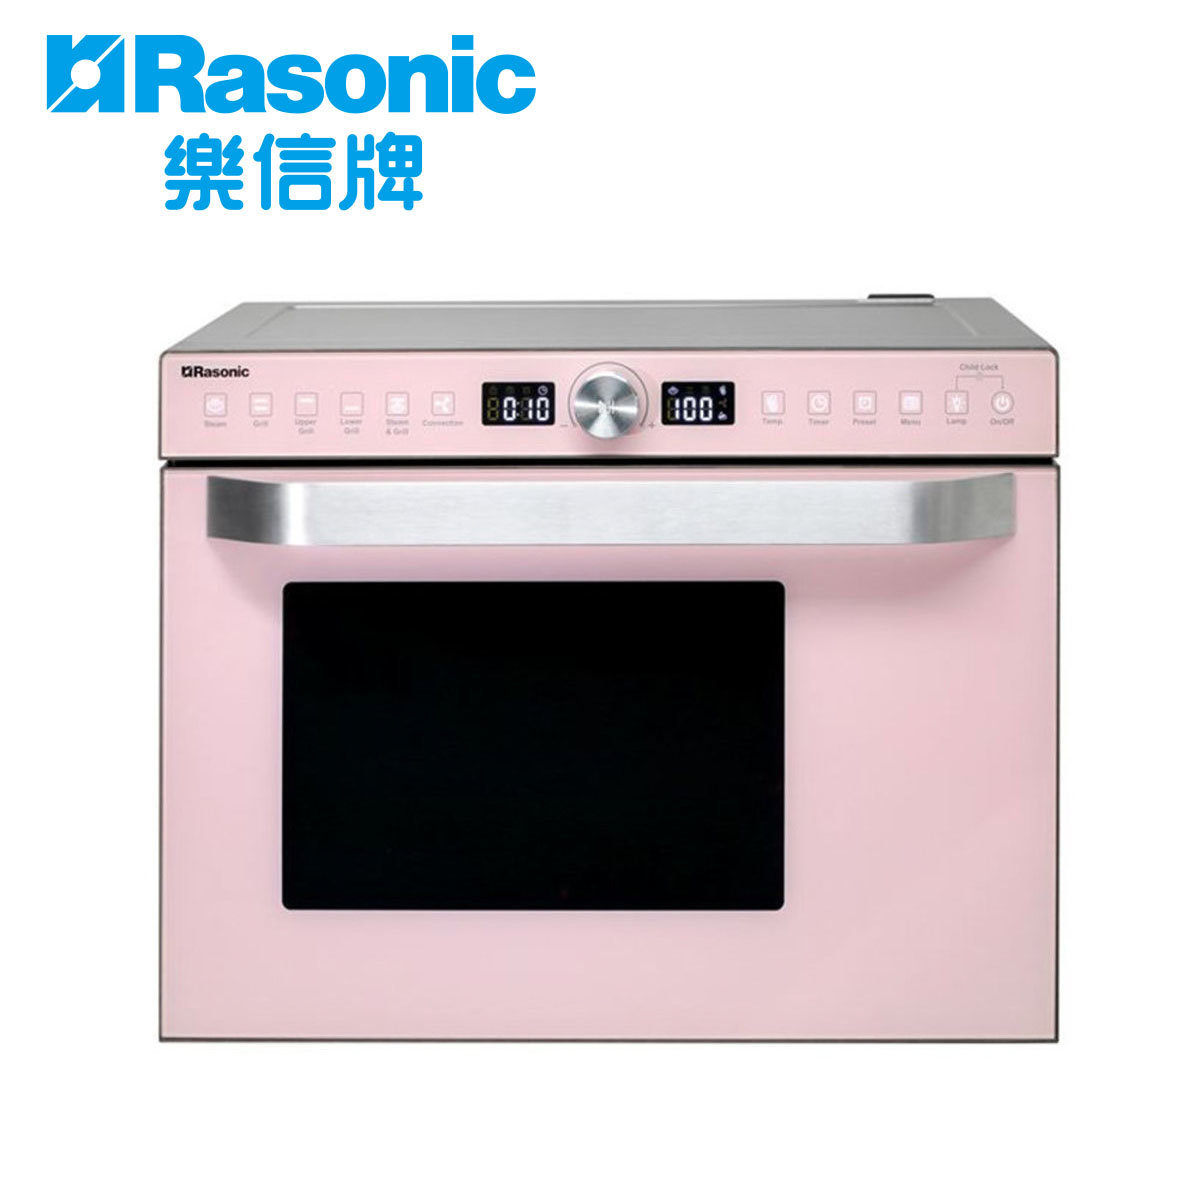 26L Steam Oven - RSG-K26/P (Pink)